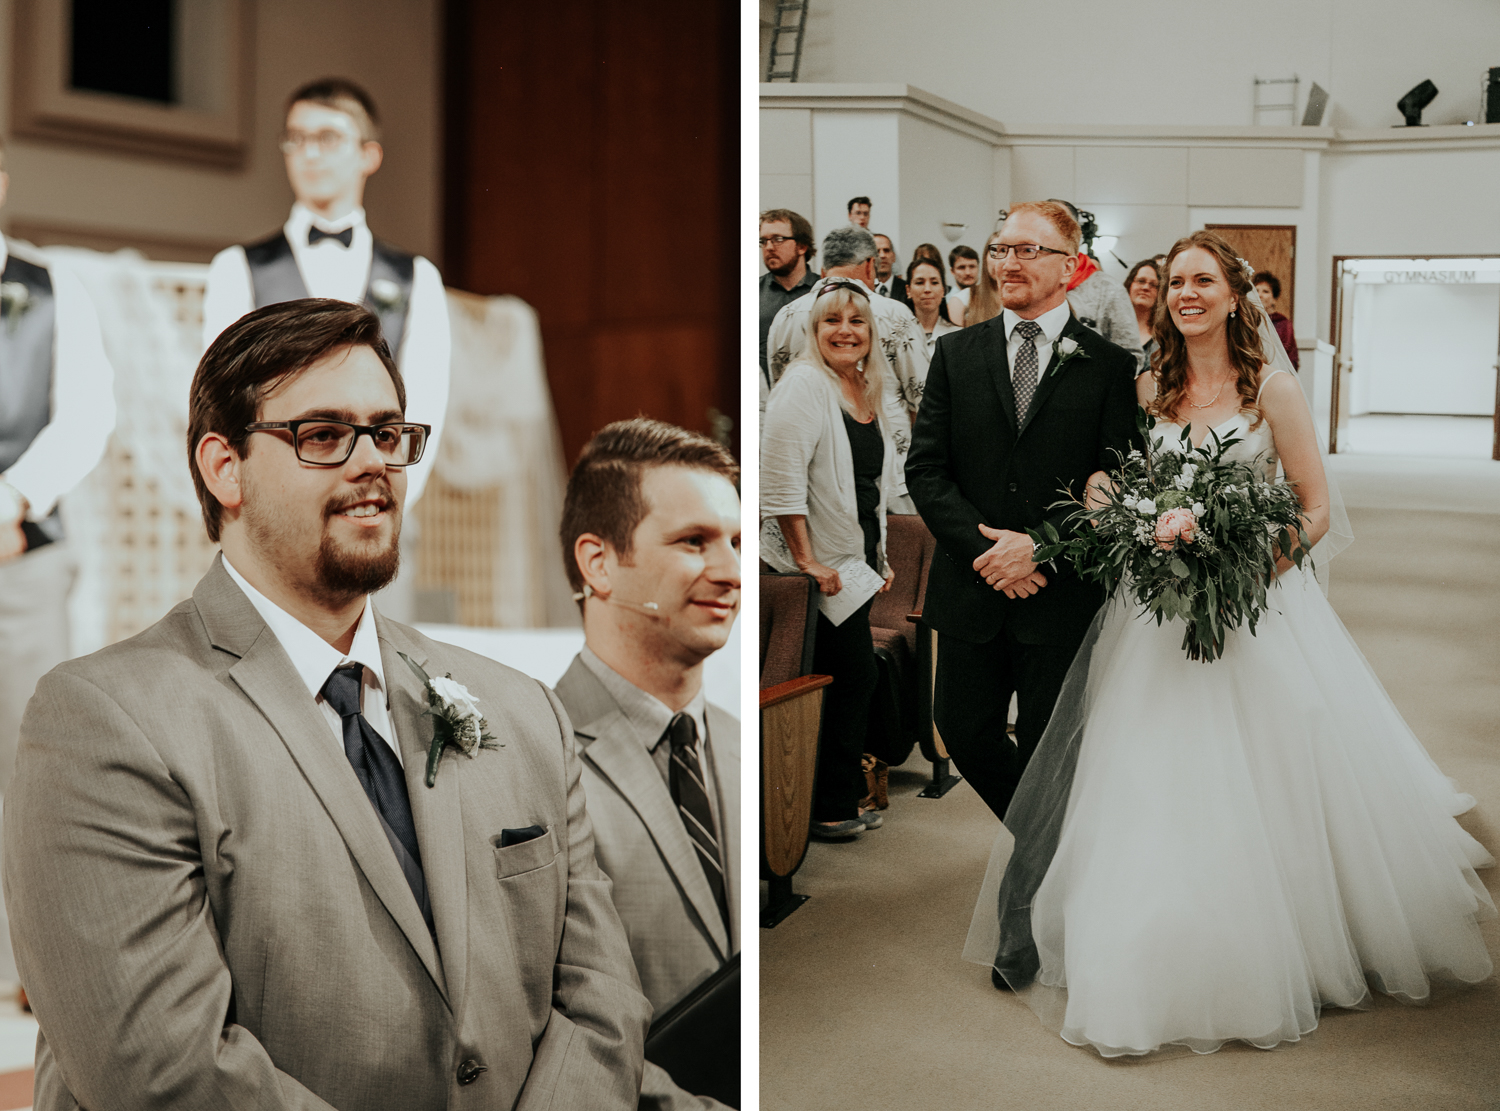 lethbridge-wedding-photographer-love-and-be-loved-photography-dan-tynnea-picture-image-photo-148.jpg